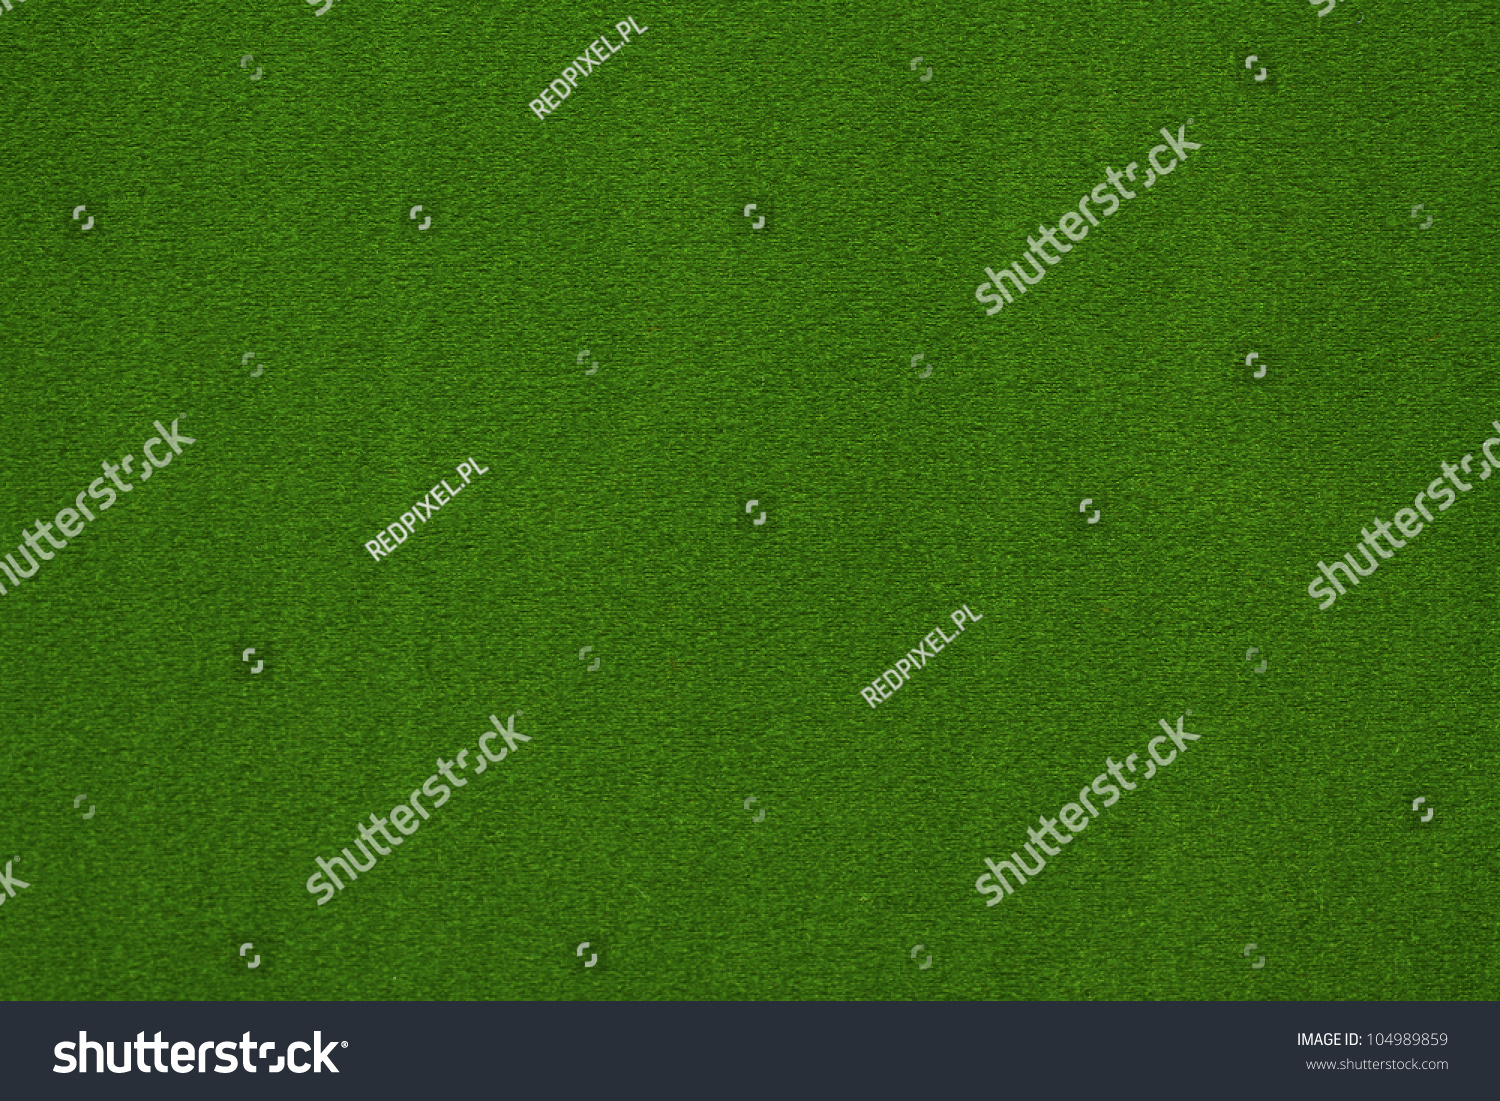 Close up of green poker table felt background stock photo 104989859